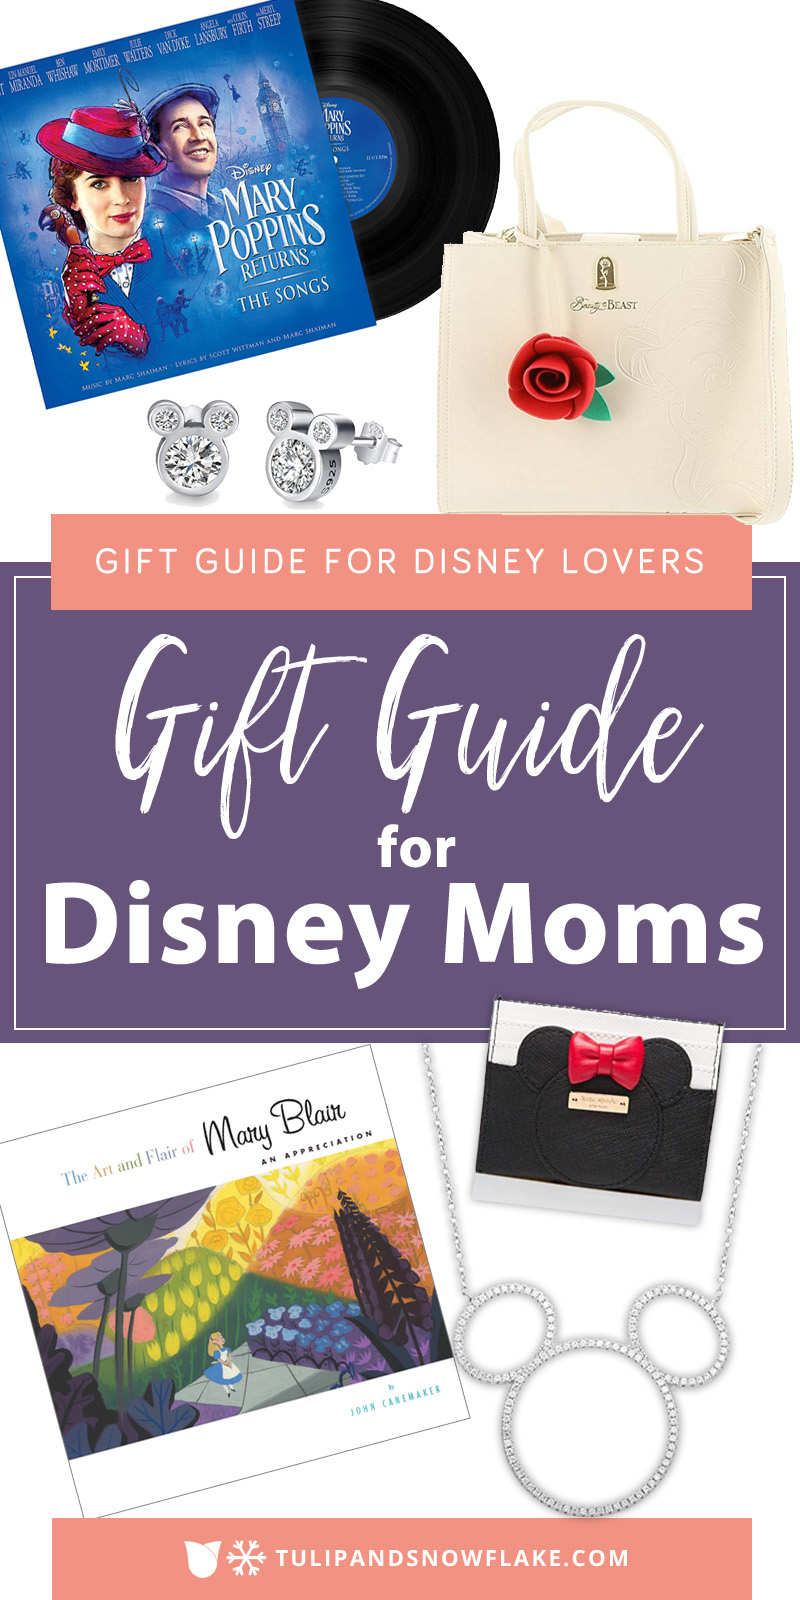 Gift Guide for Disney Moms